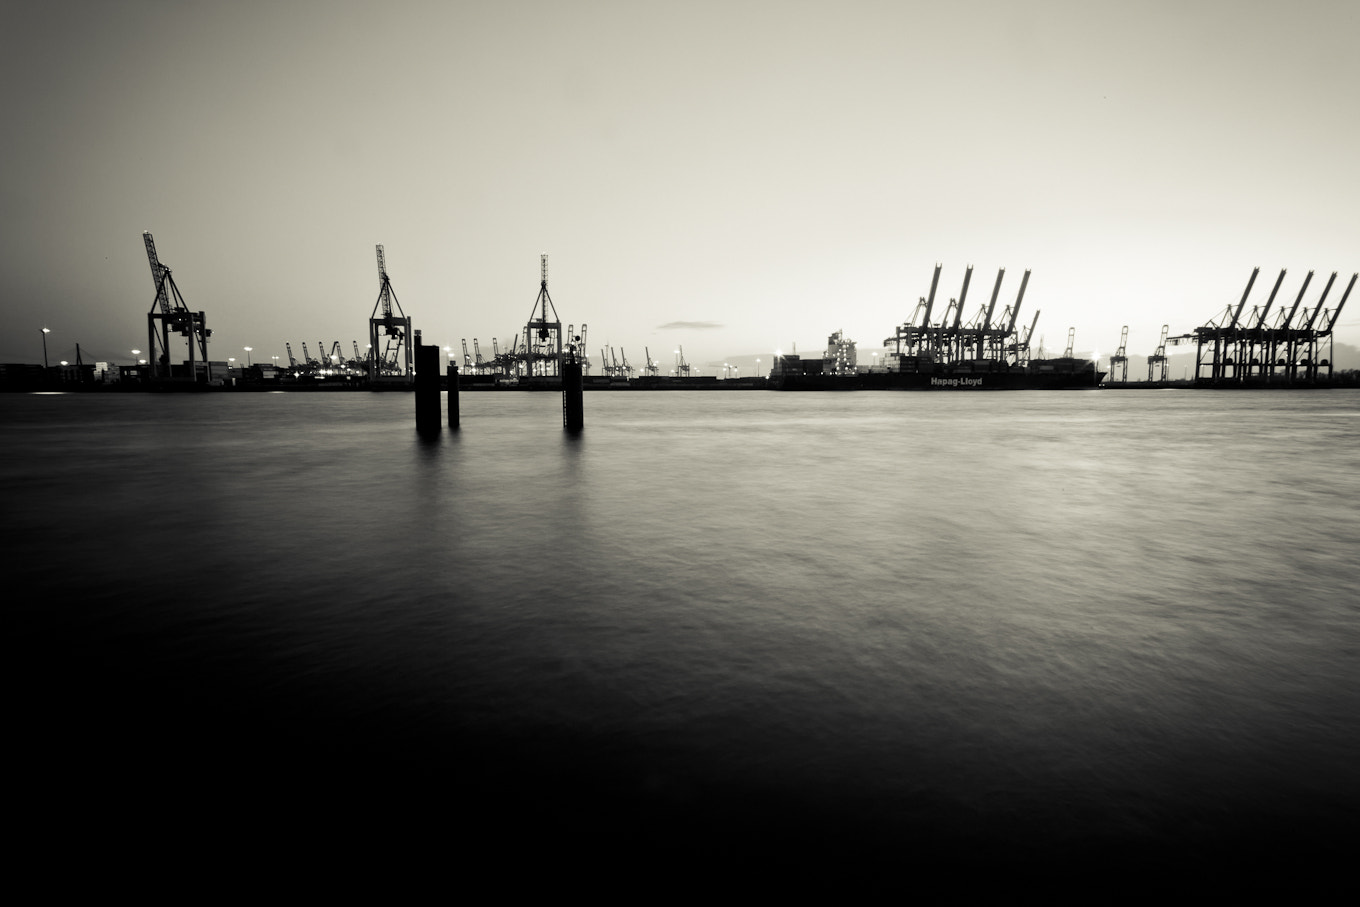 Photograph Minimal Harbor by Marco Guerreiro on 500px